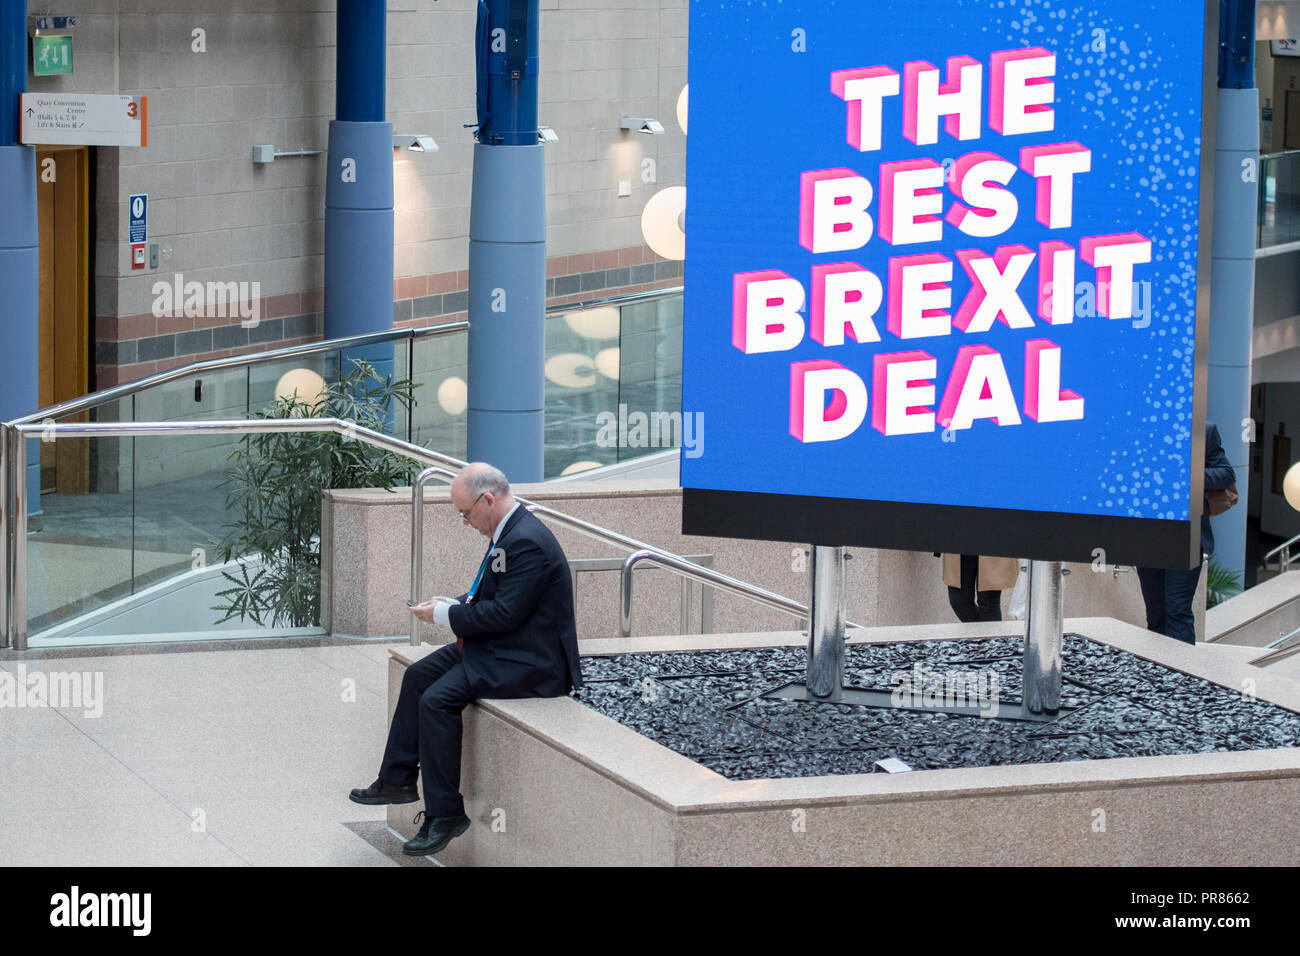 Birmingham, UK. Birmingham, UK. 30 September 2018 - An attendee sits in front of a 'The best Brexit deal' sign in Conservative Party Conference 2018 Credit: Benjamin Wareing/Alamy Live News Credit: Benjamin Wareing/Alamy Live News Stock Photo